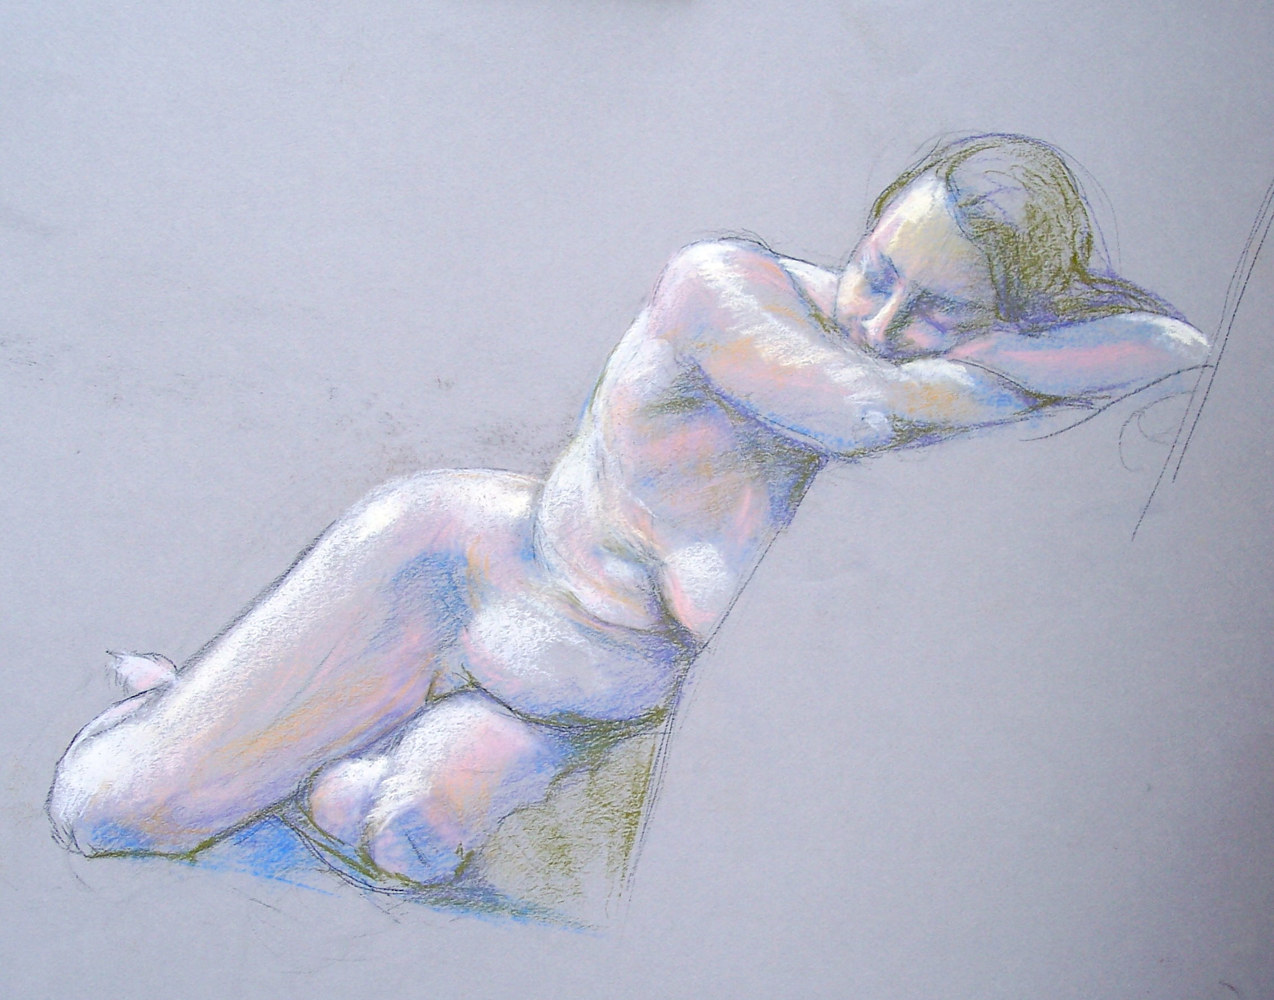 Sleeping Nude  by Don Moore